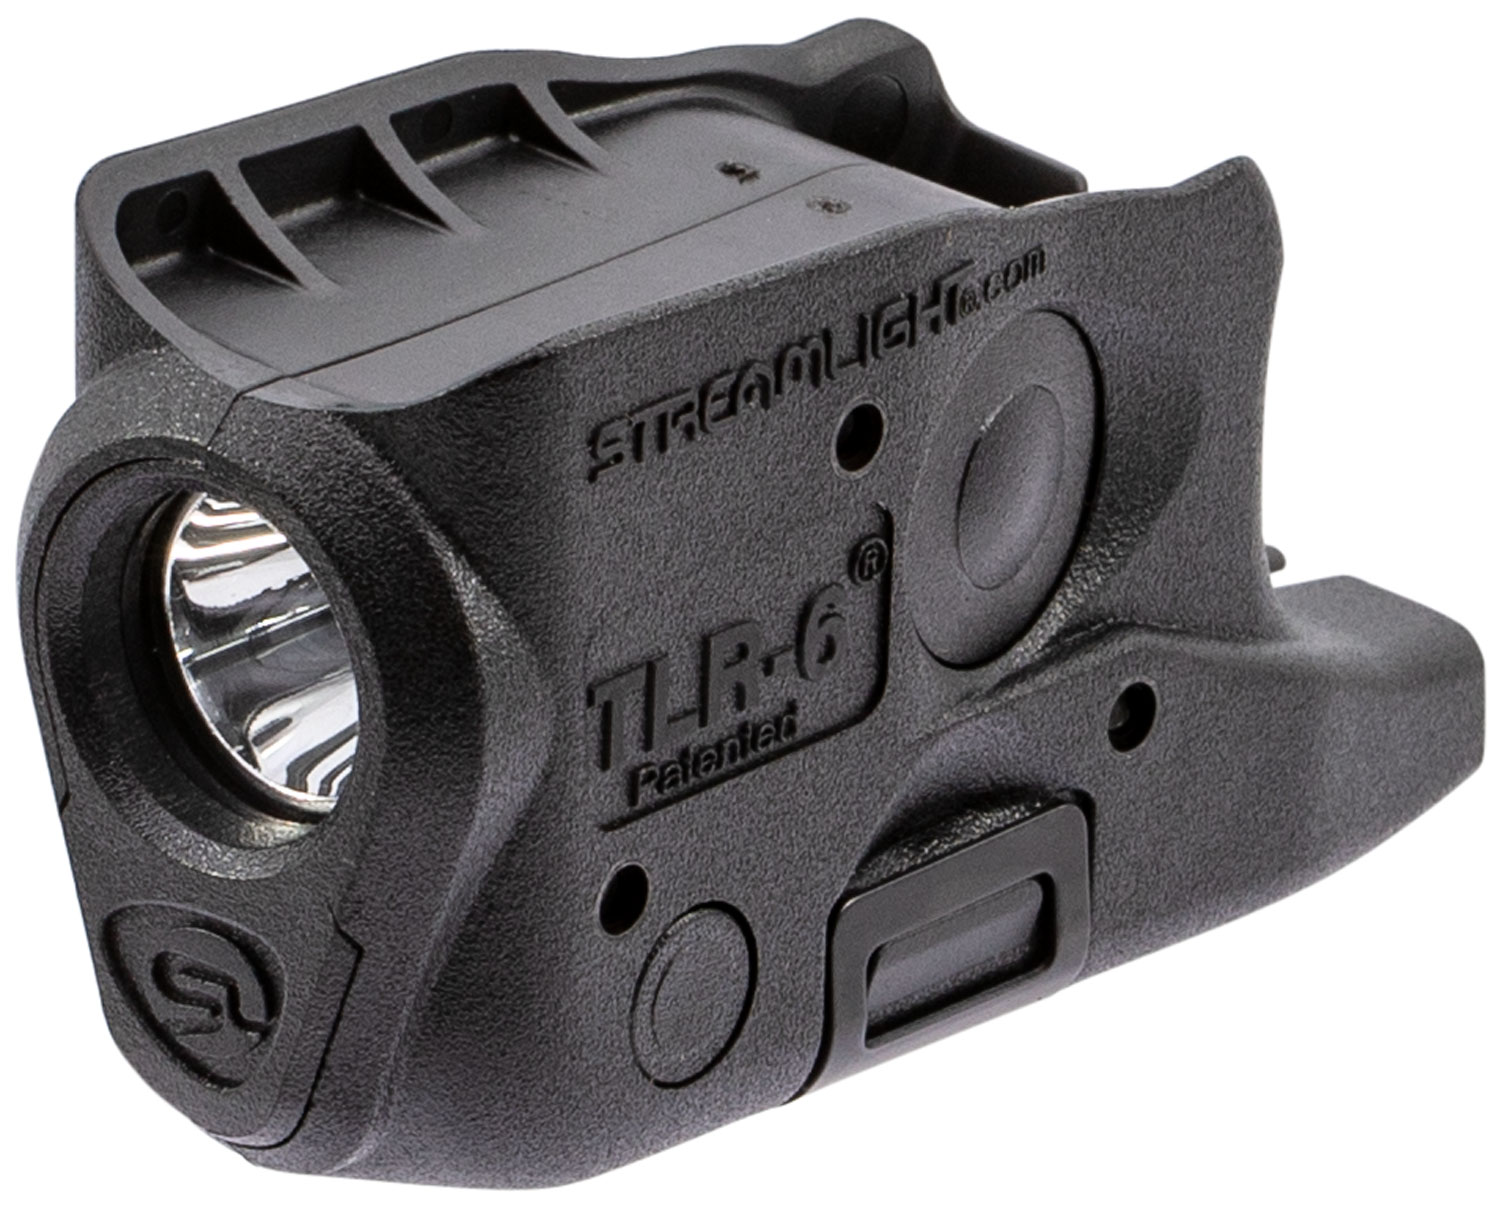 Streamlight 69282 TLR-6 Weapon Light fits Glock 26/27/33 White LED 100 Lumens 1/3N Lithium Battery Black Polymer No Laser